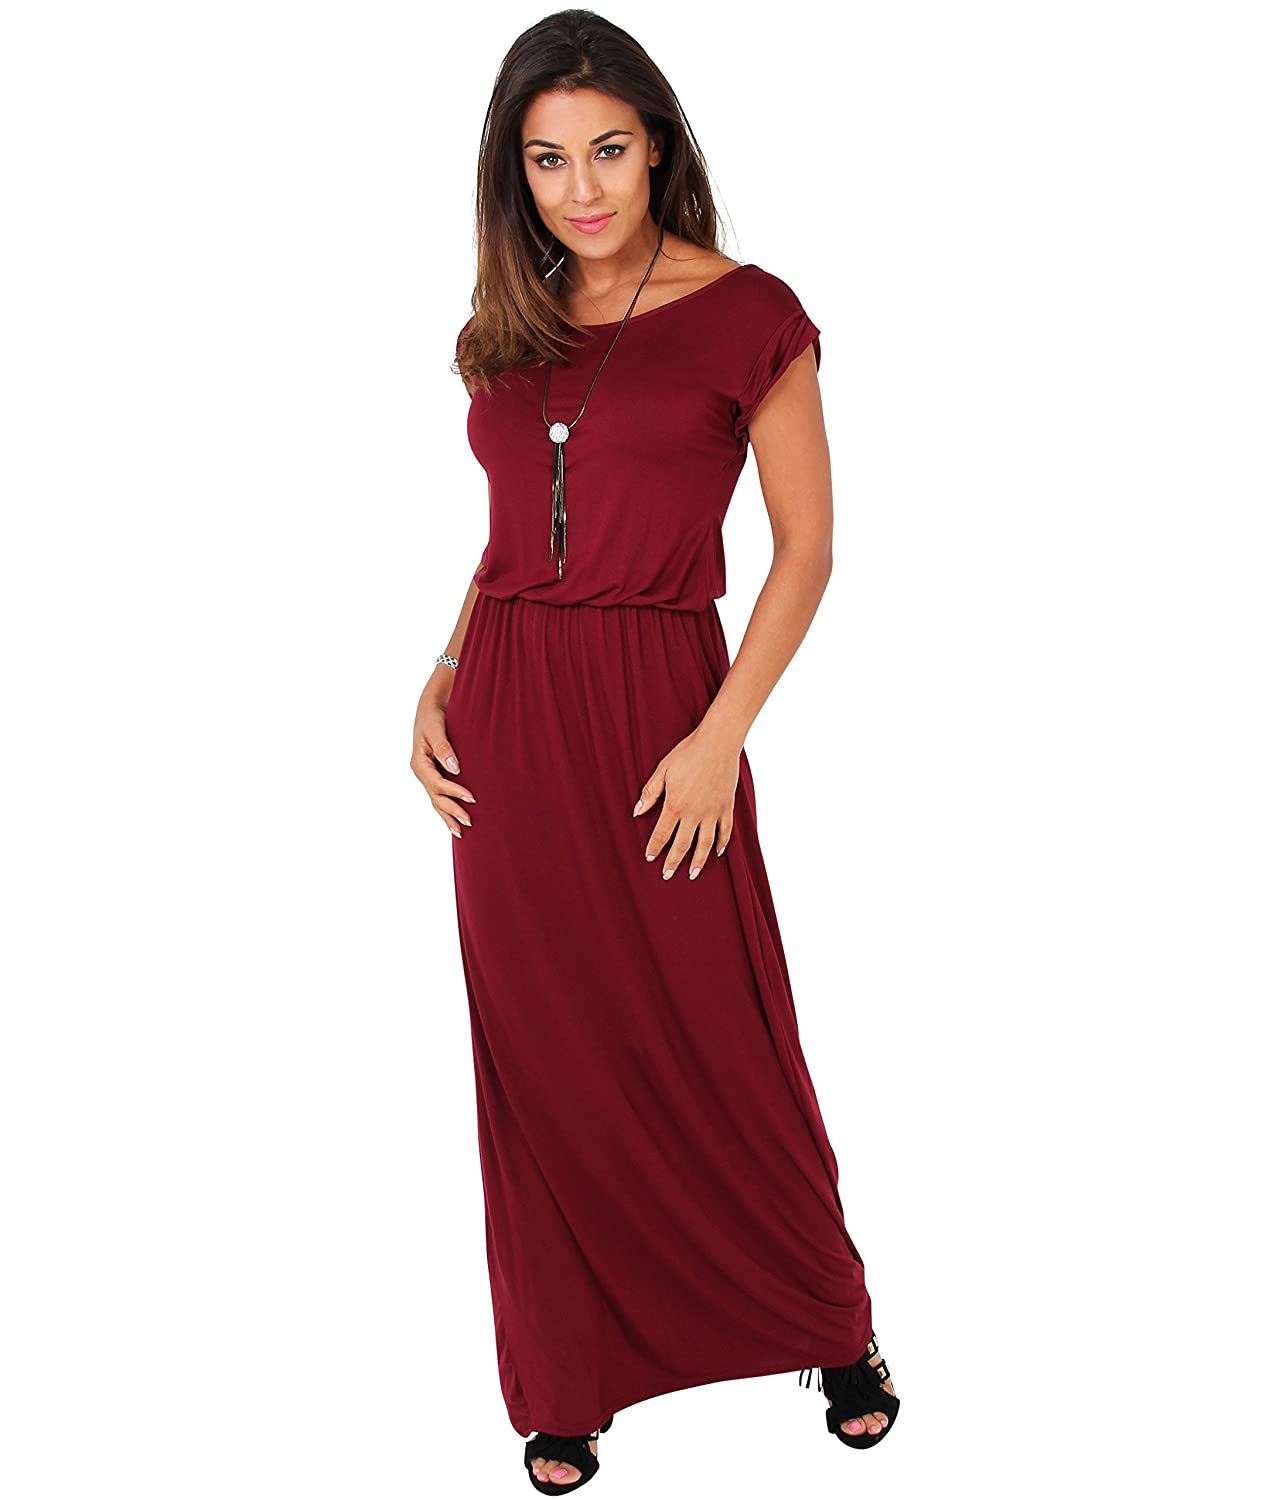 KRISP Womens Maxi Dress Short Sleeve Party Festival Evening